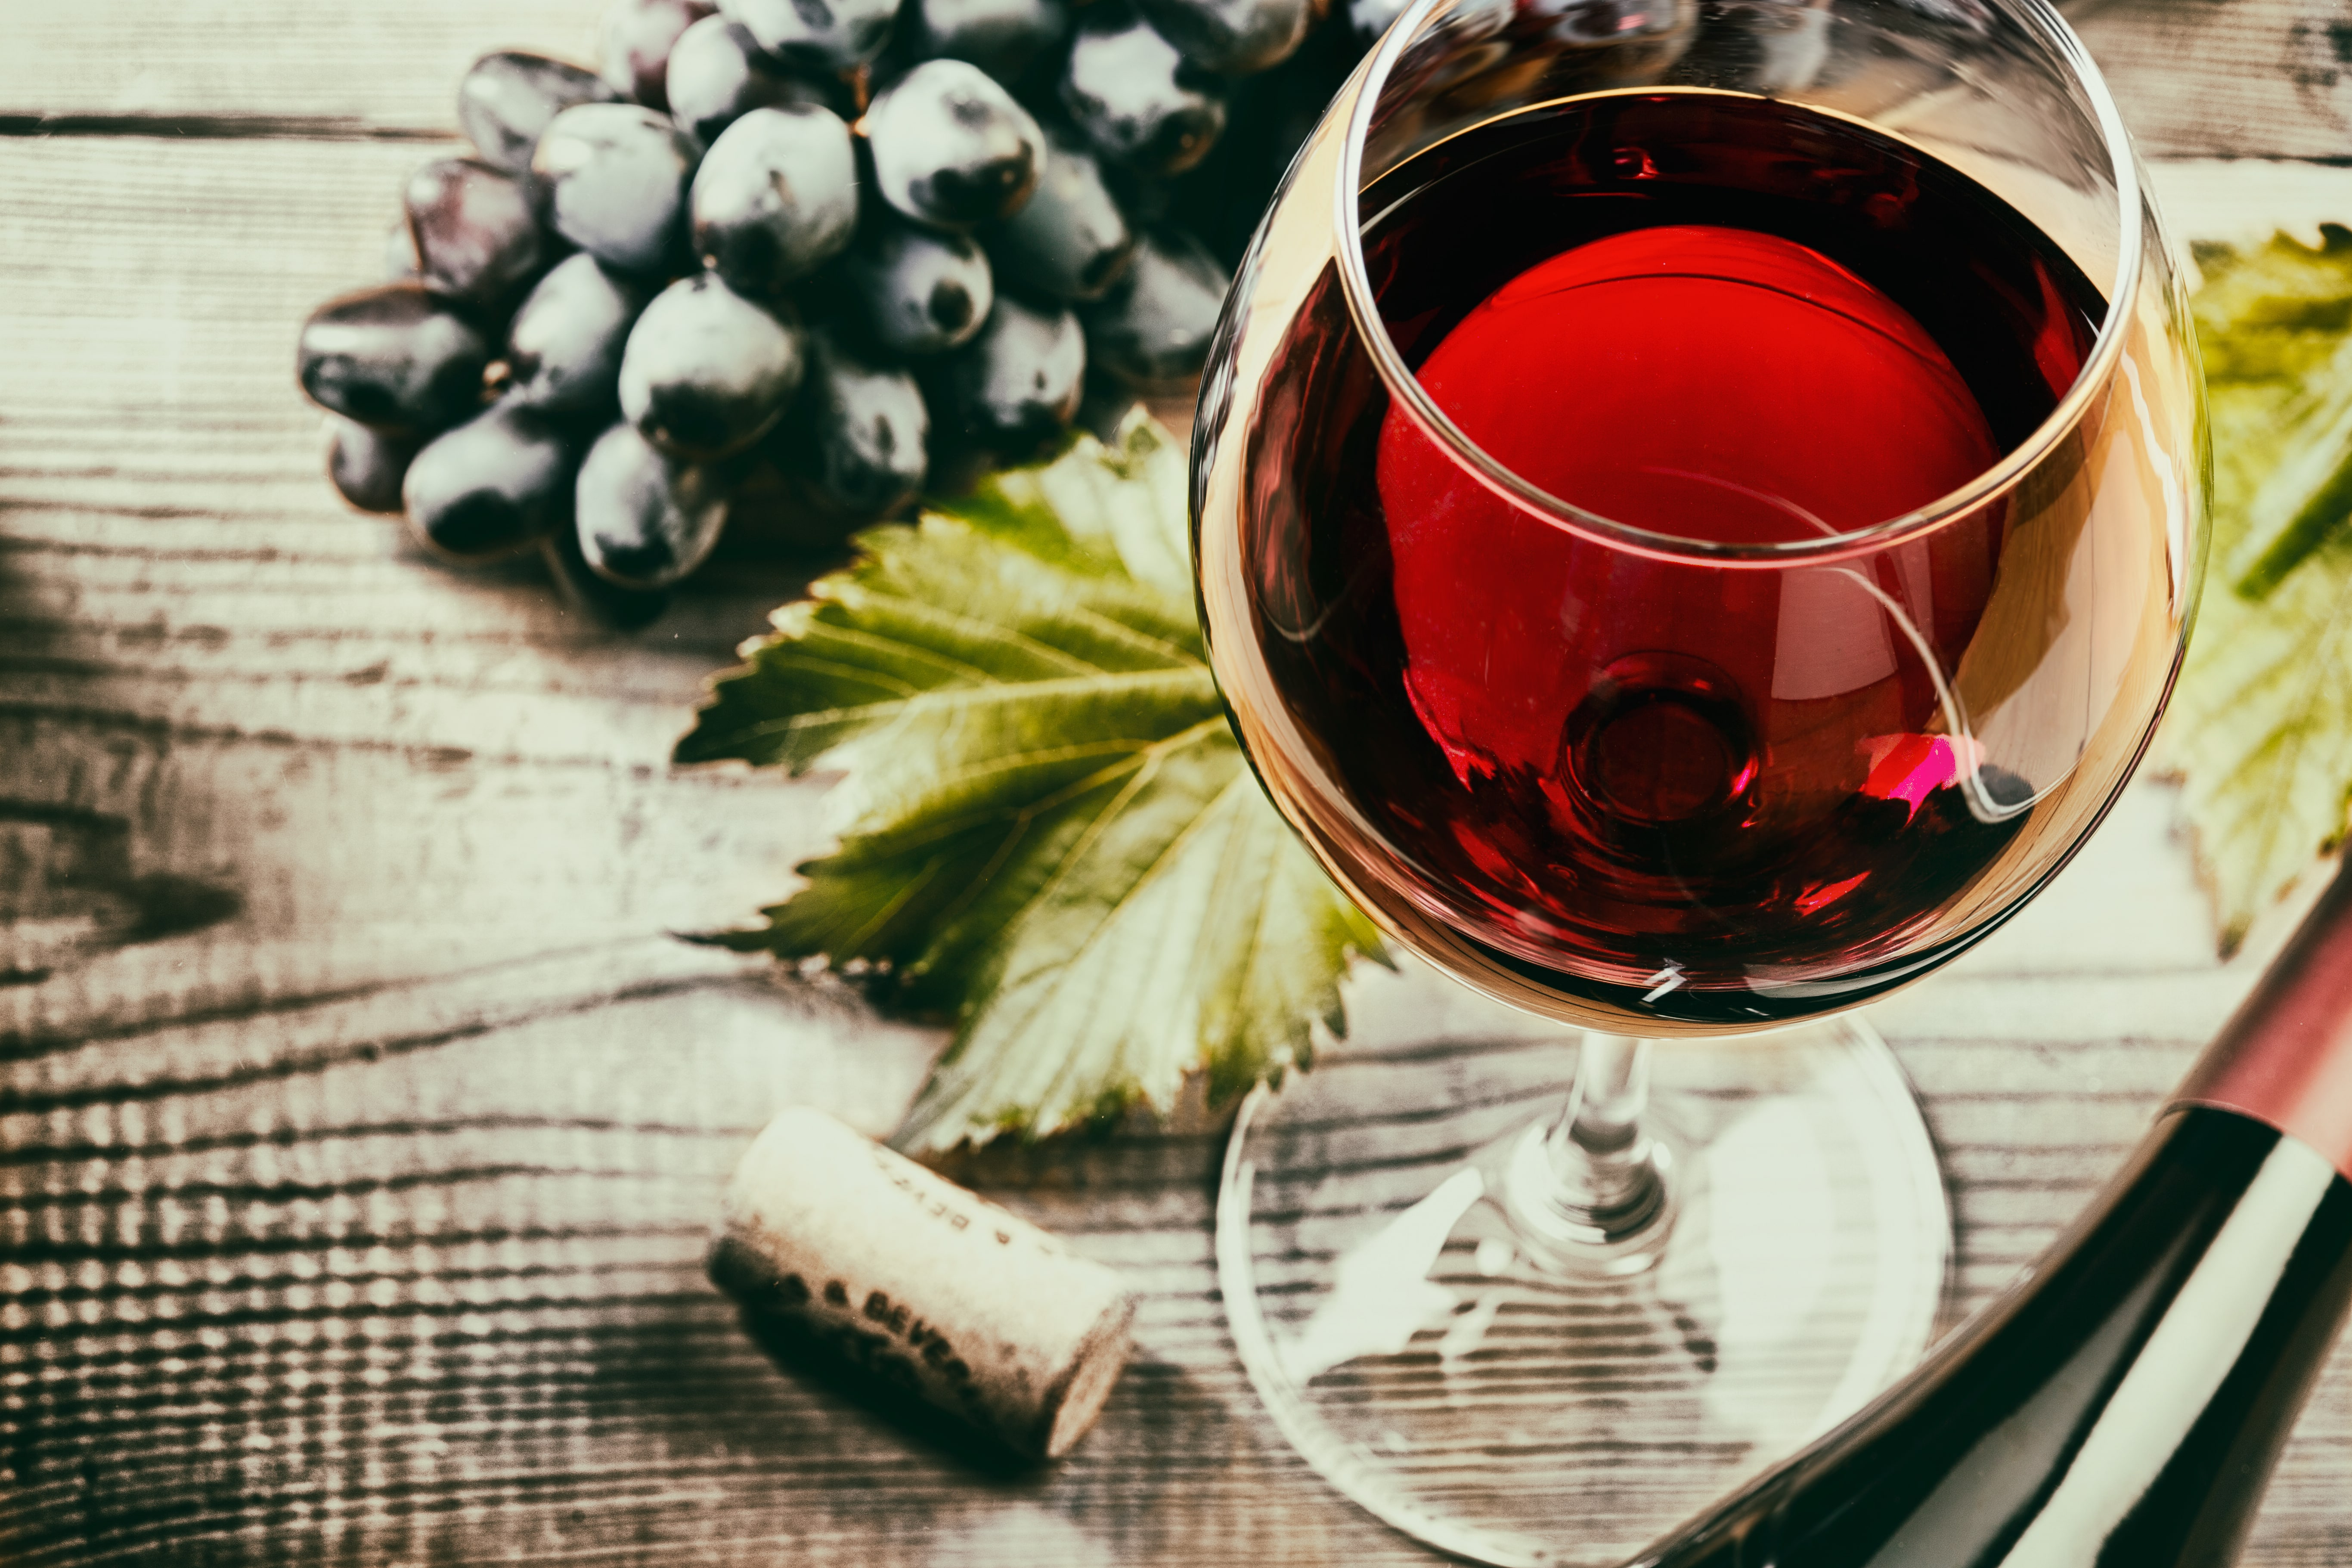 Red,Wine,And,Grapes.,Wine,And,Grapes,In,Vintage,Setting